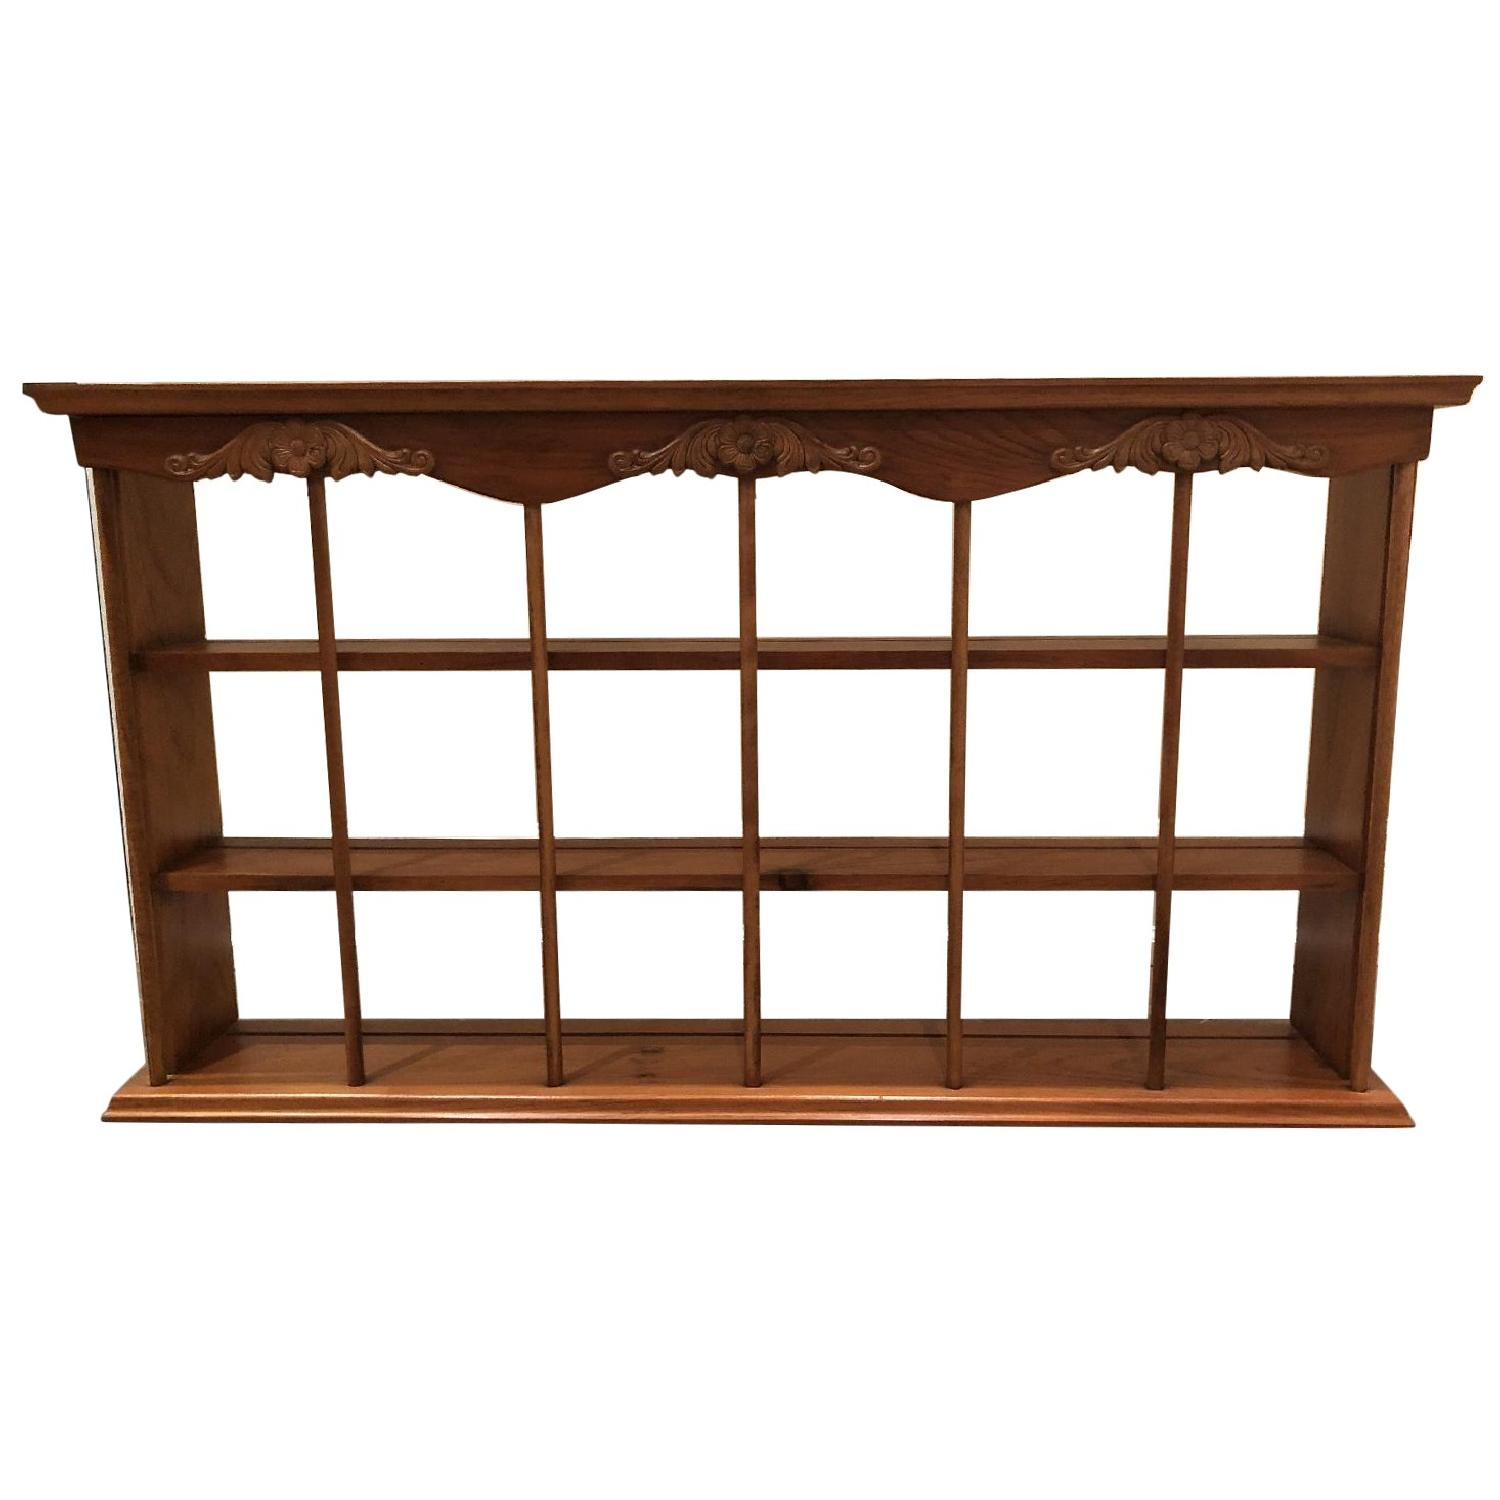 Home Decorators Collection Wooden Curio Shelf in Honey